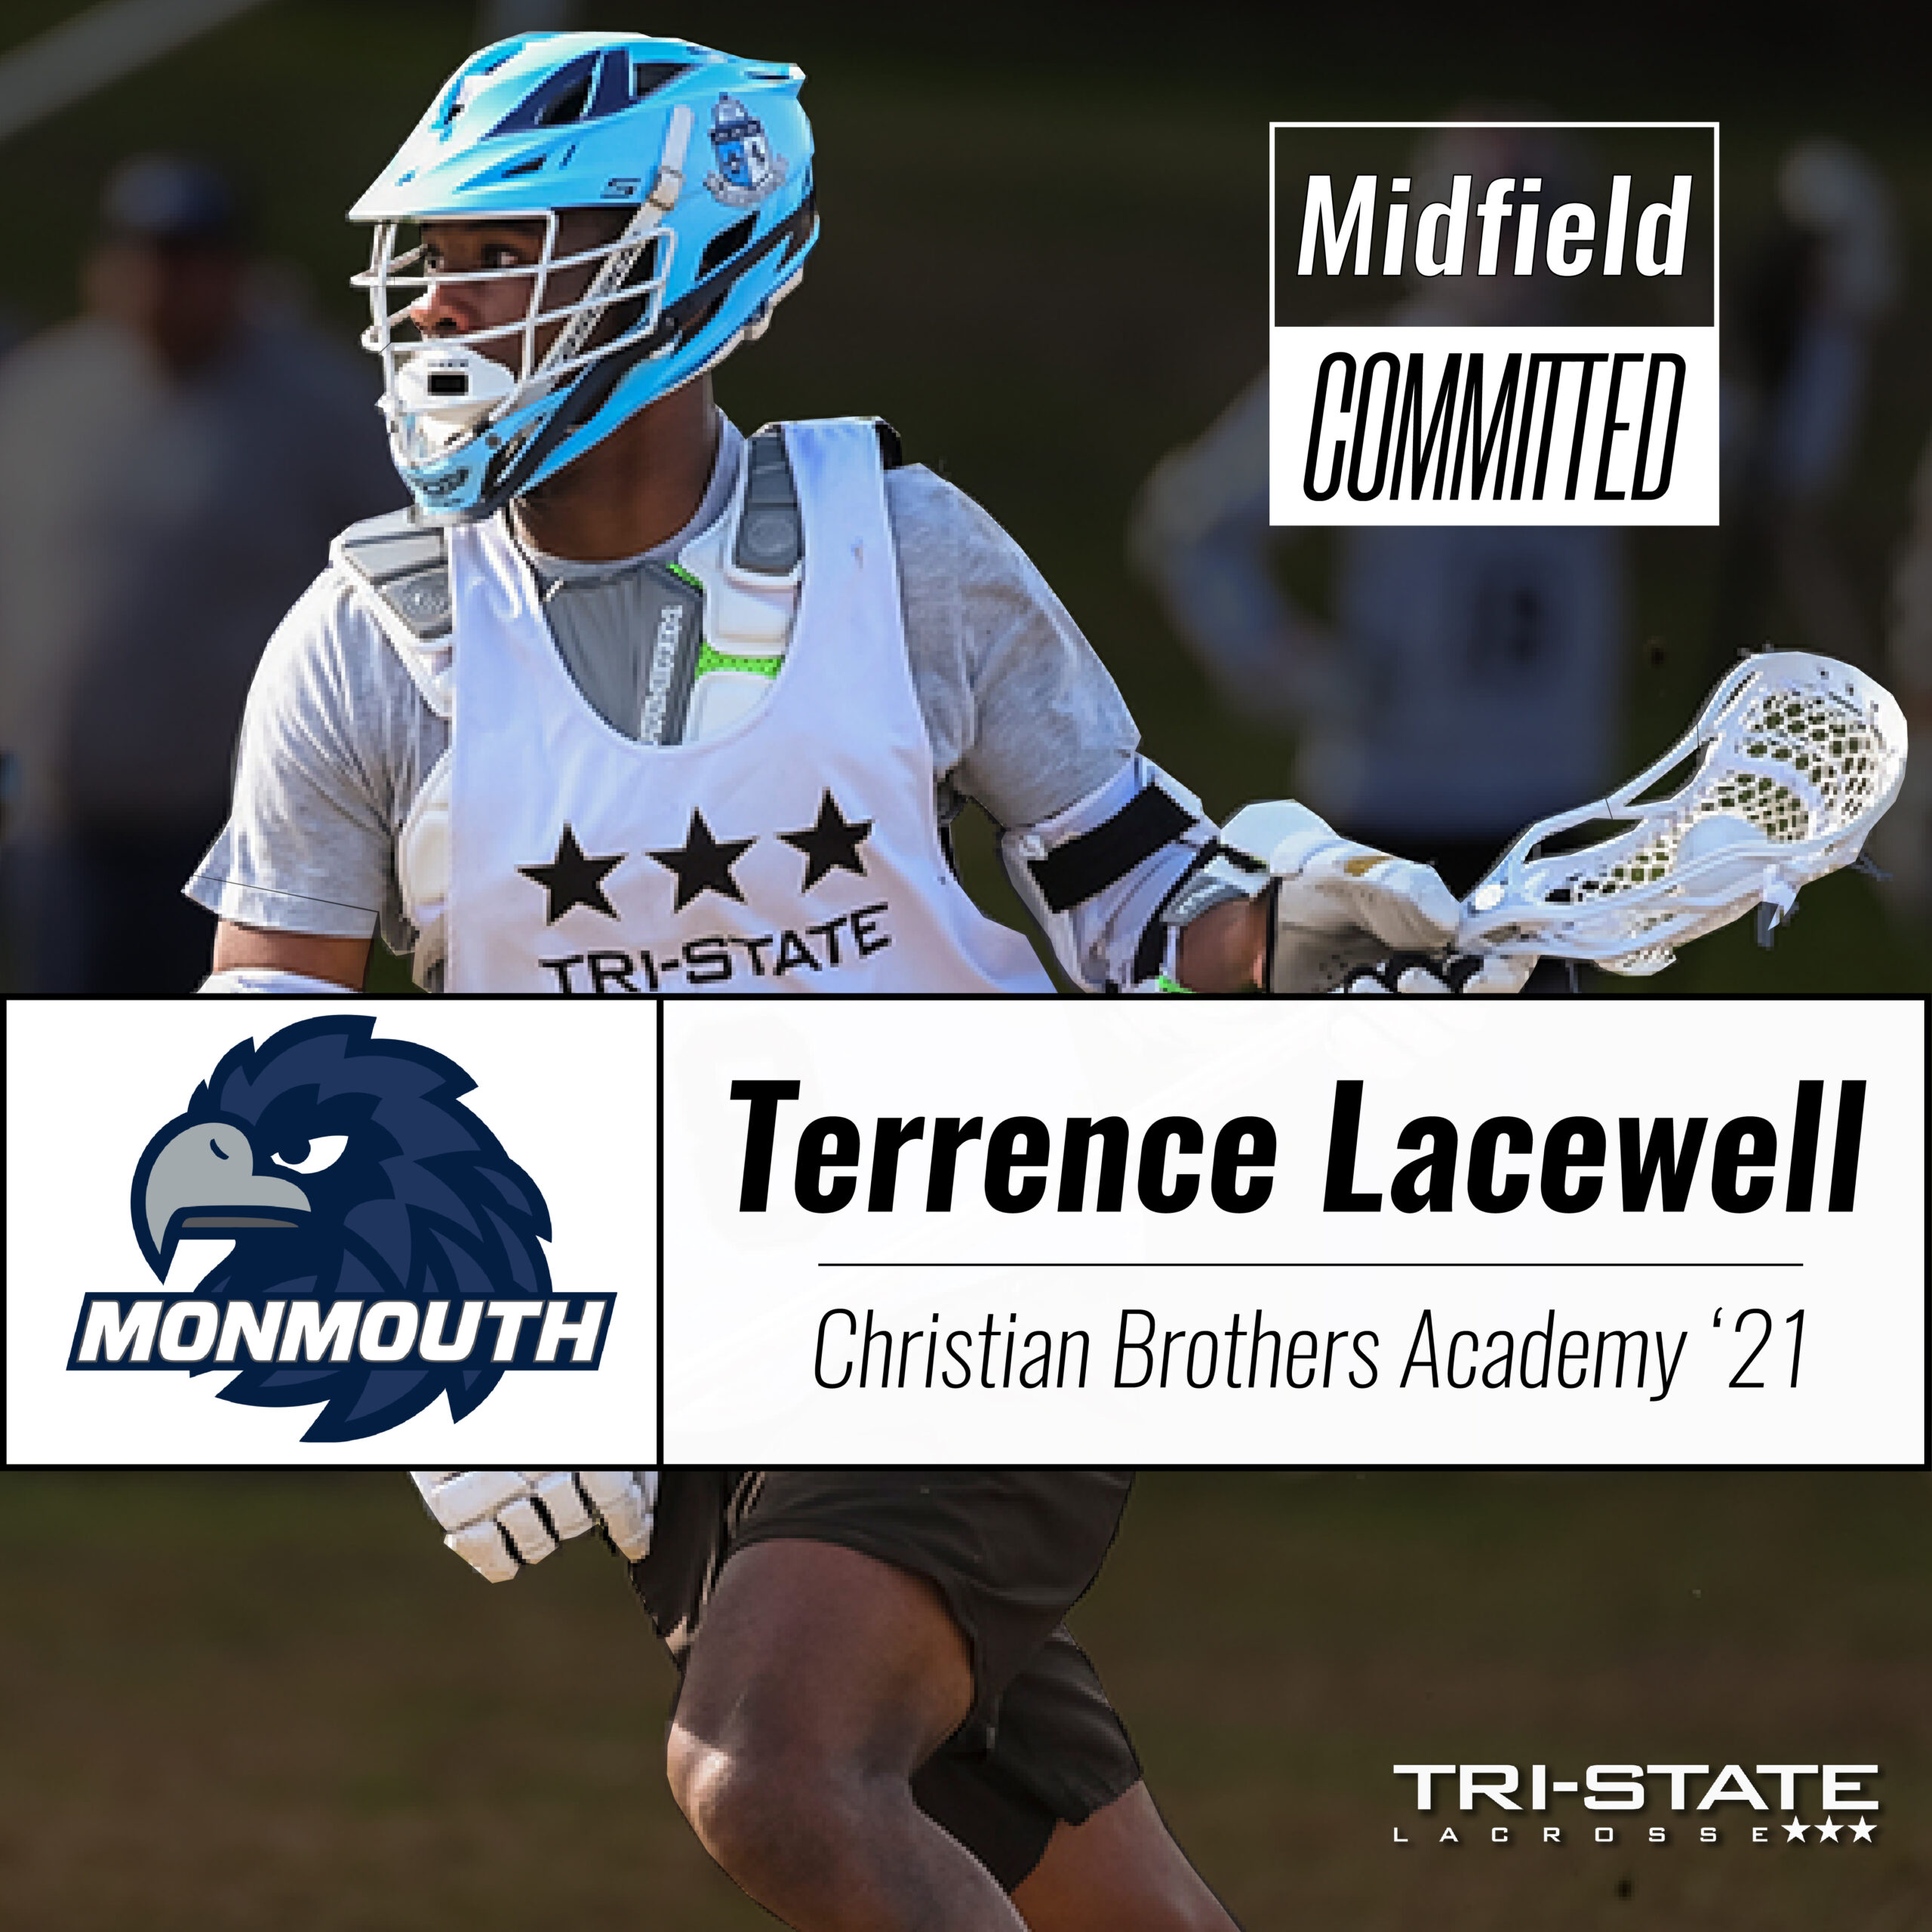 Terrence Lacewell, CBA - Monmouth